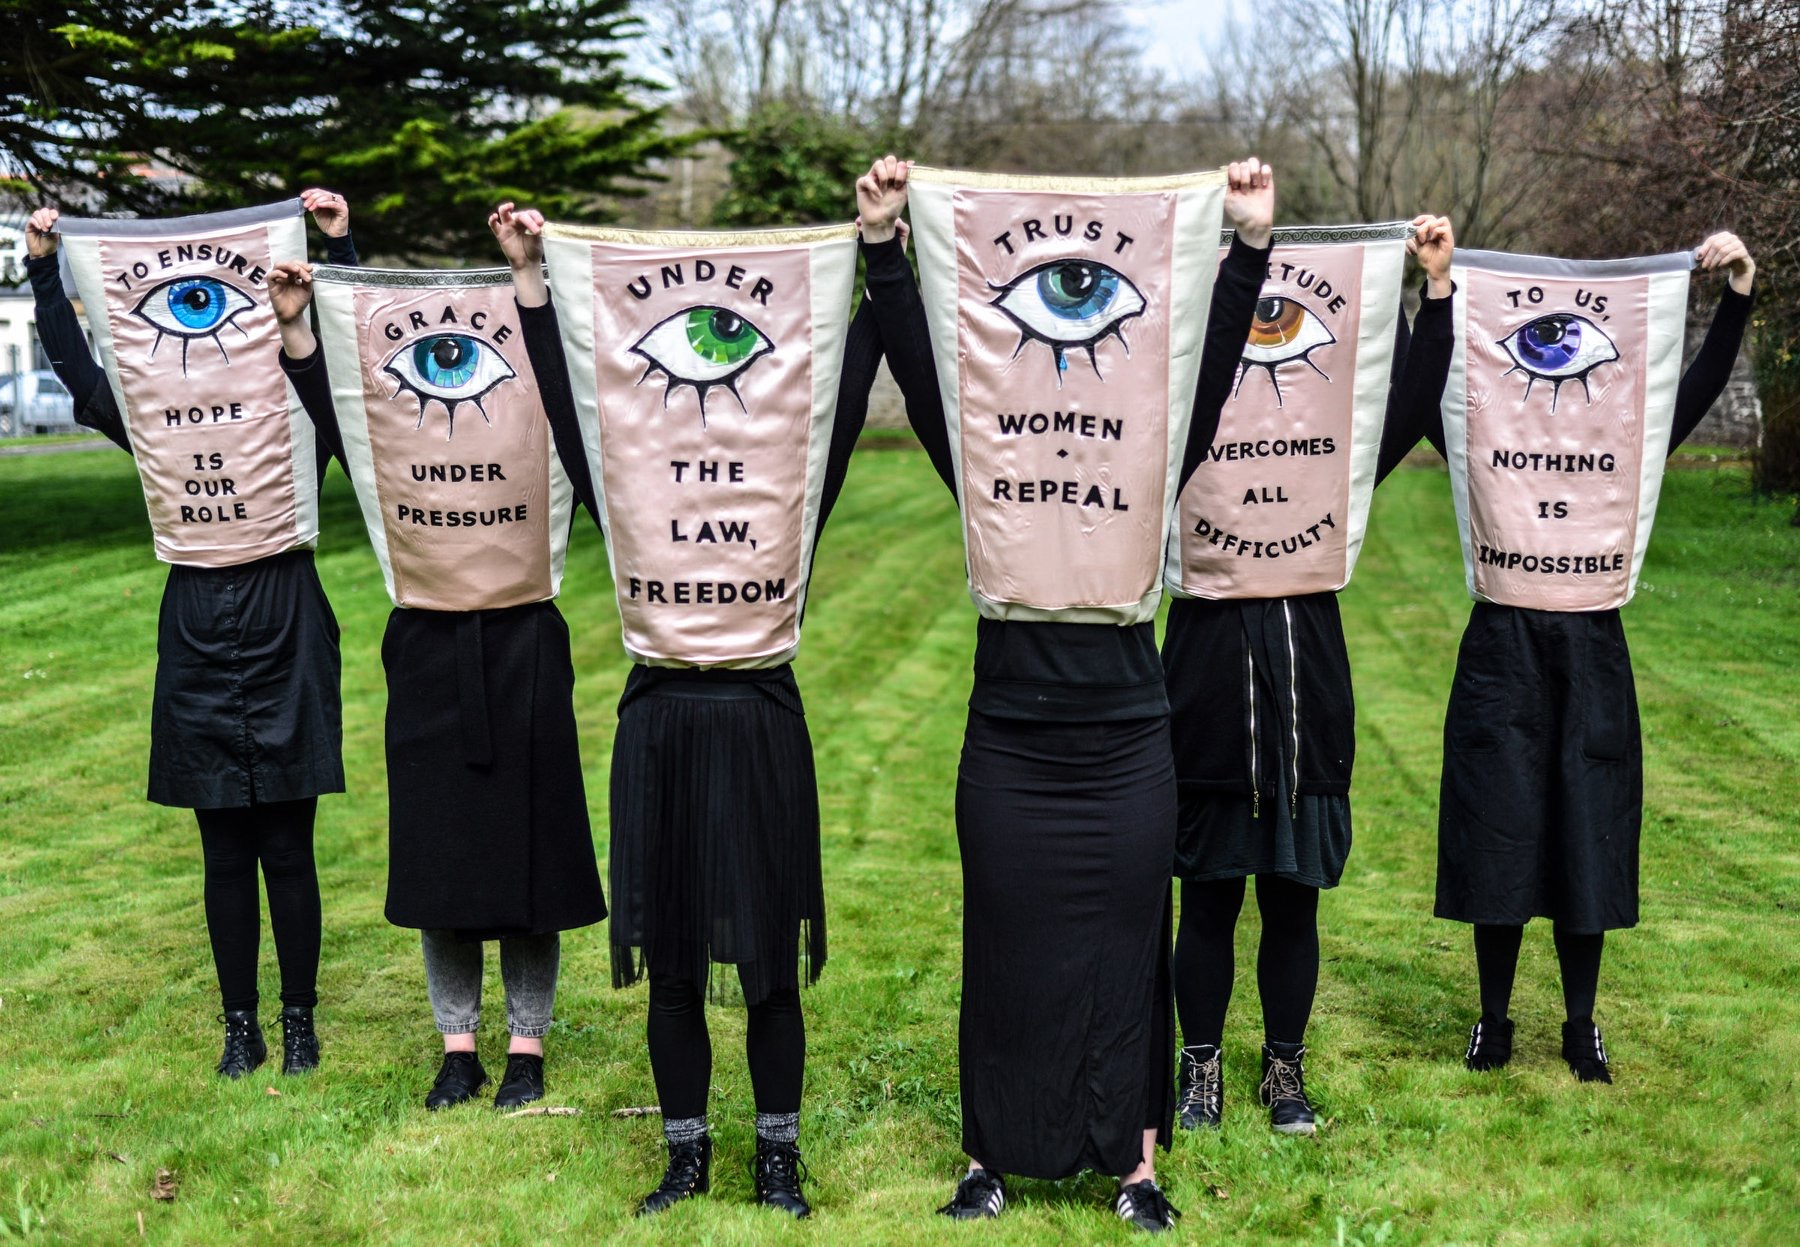 Aprons of Power performance for the Artists' Campaign to Repeal the Eighth Amendment Repeal! Procession at EVA International Biennale, 2018, Limerick. image credit; Darren Ryan